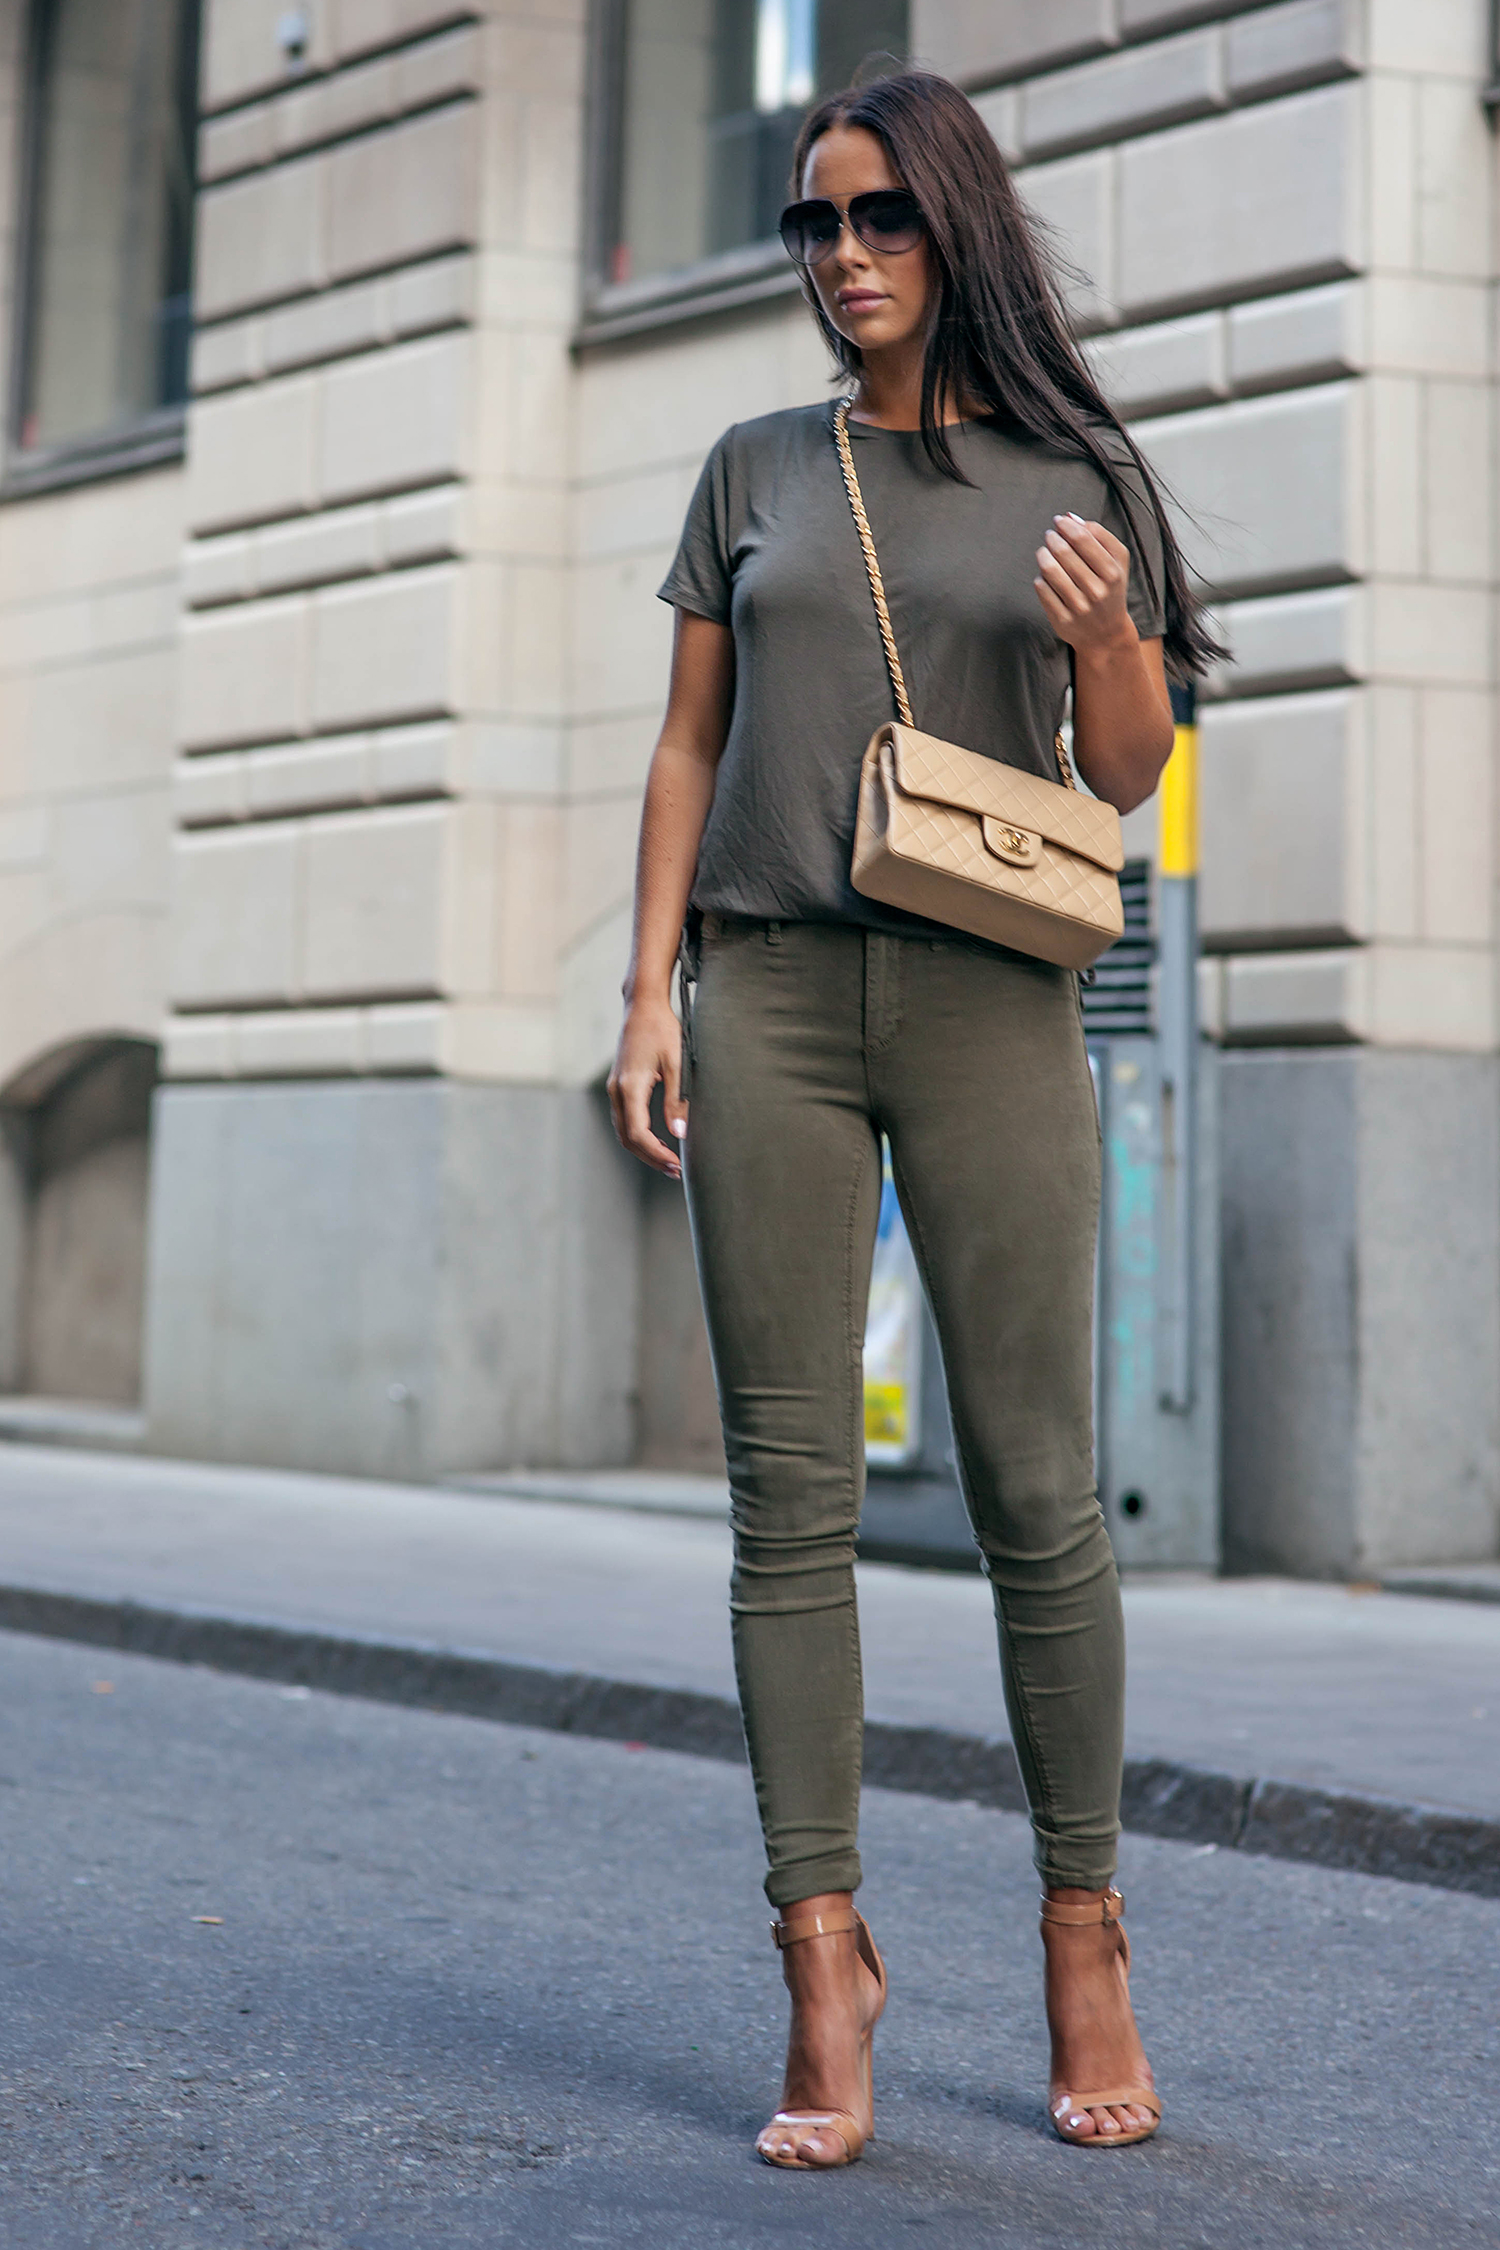 Johanna Olsson is looking cute and edgy in this all-khaki outfit consisting of skinny jeggings, a plain tee, and nude sandals. This look is striking and perfect year round! Shoes: La Strada, Jeans/Tee: River Island, BagL Chanel.